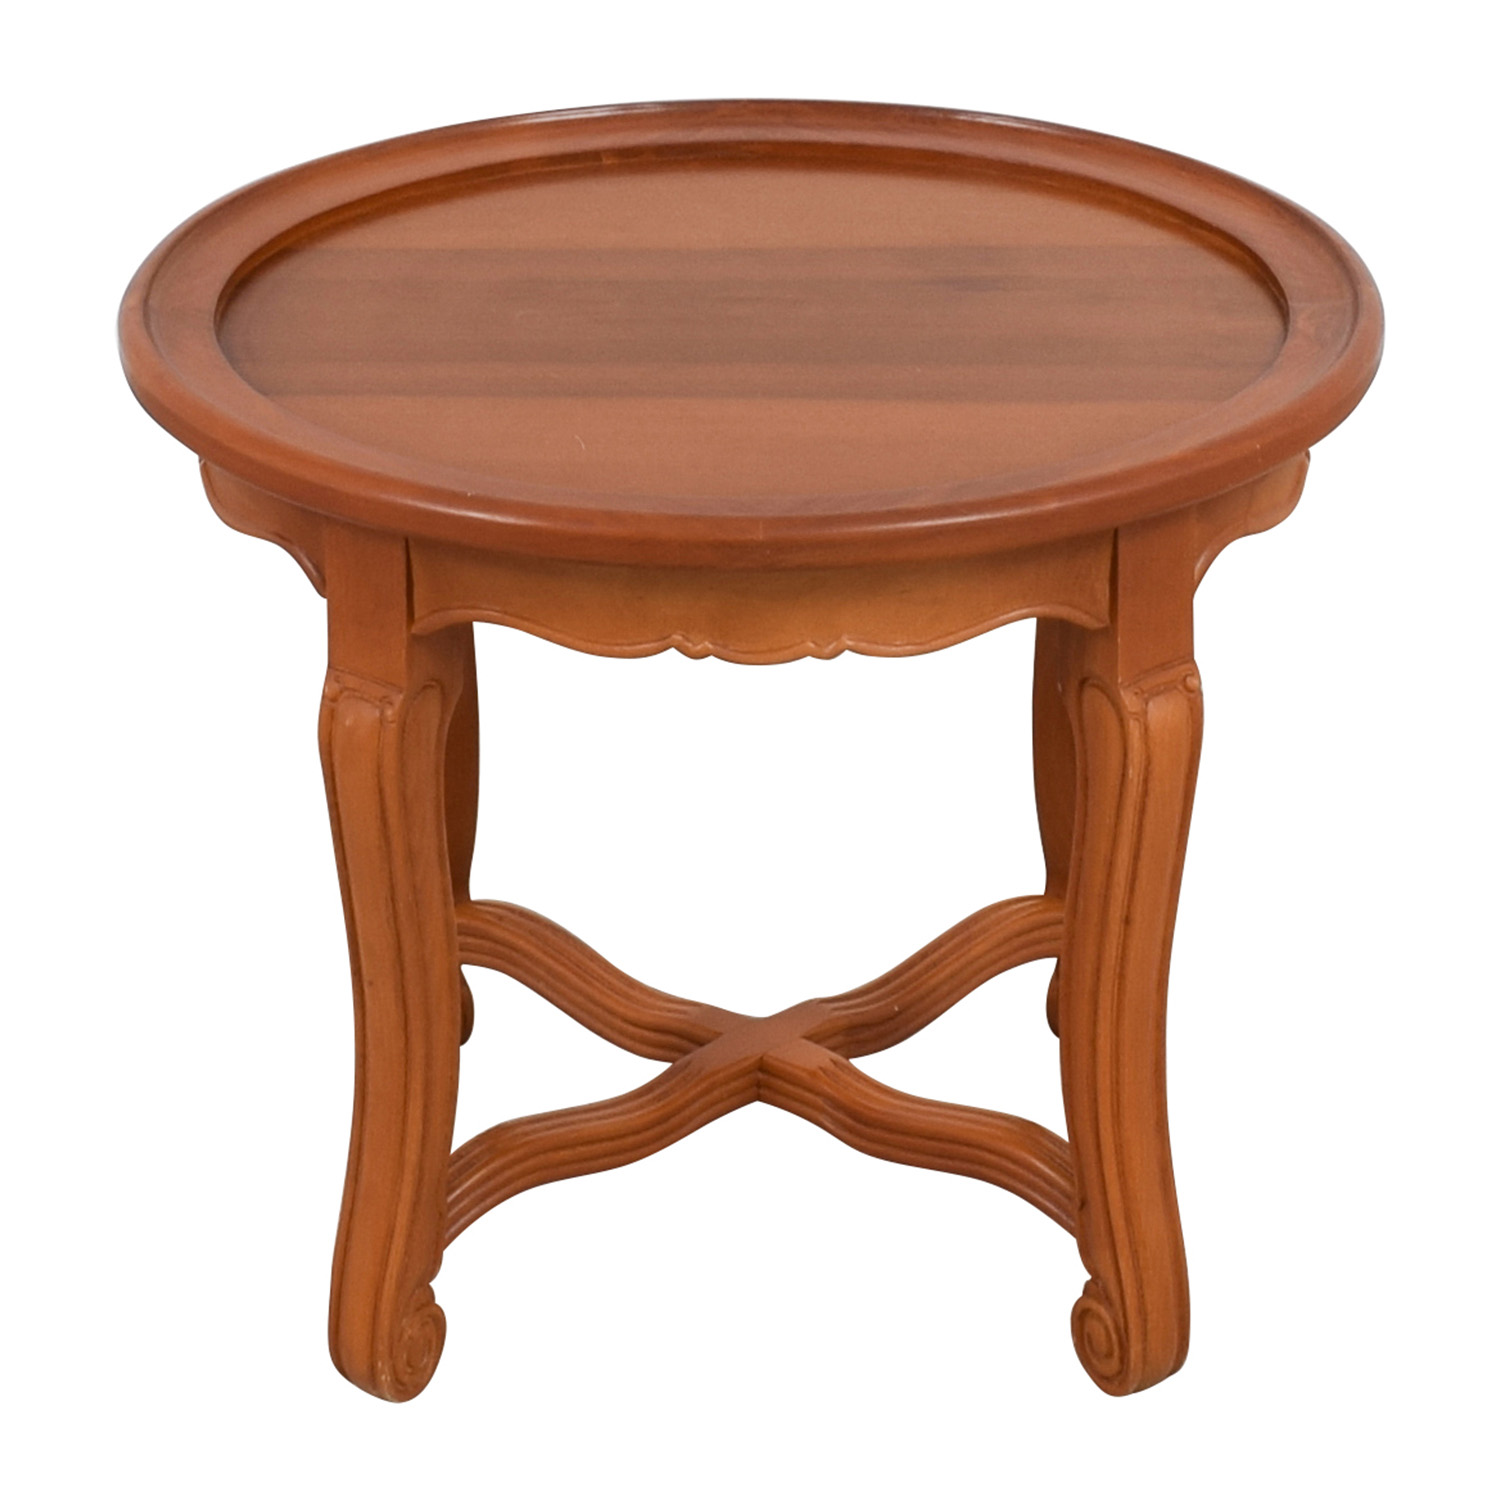 Round Antique Wood Side Table brown